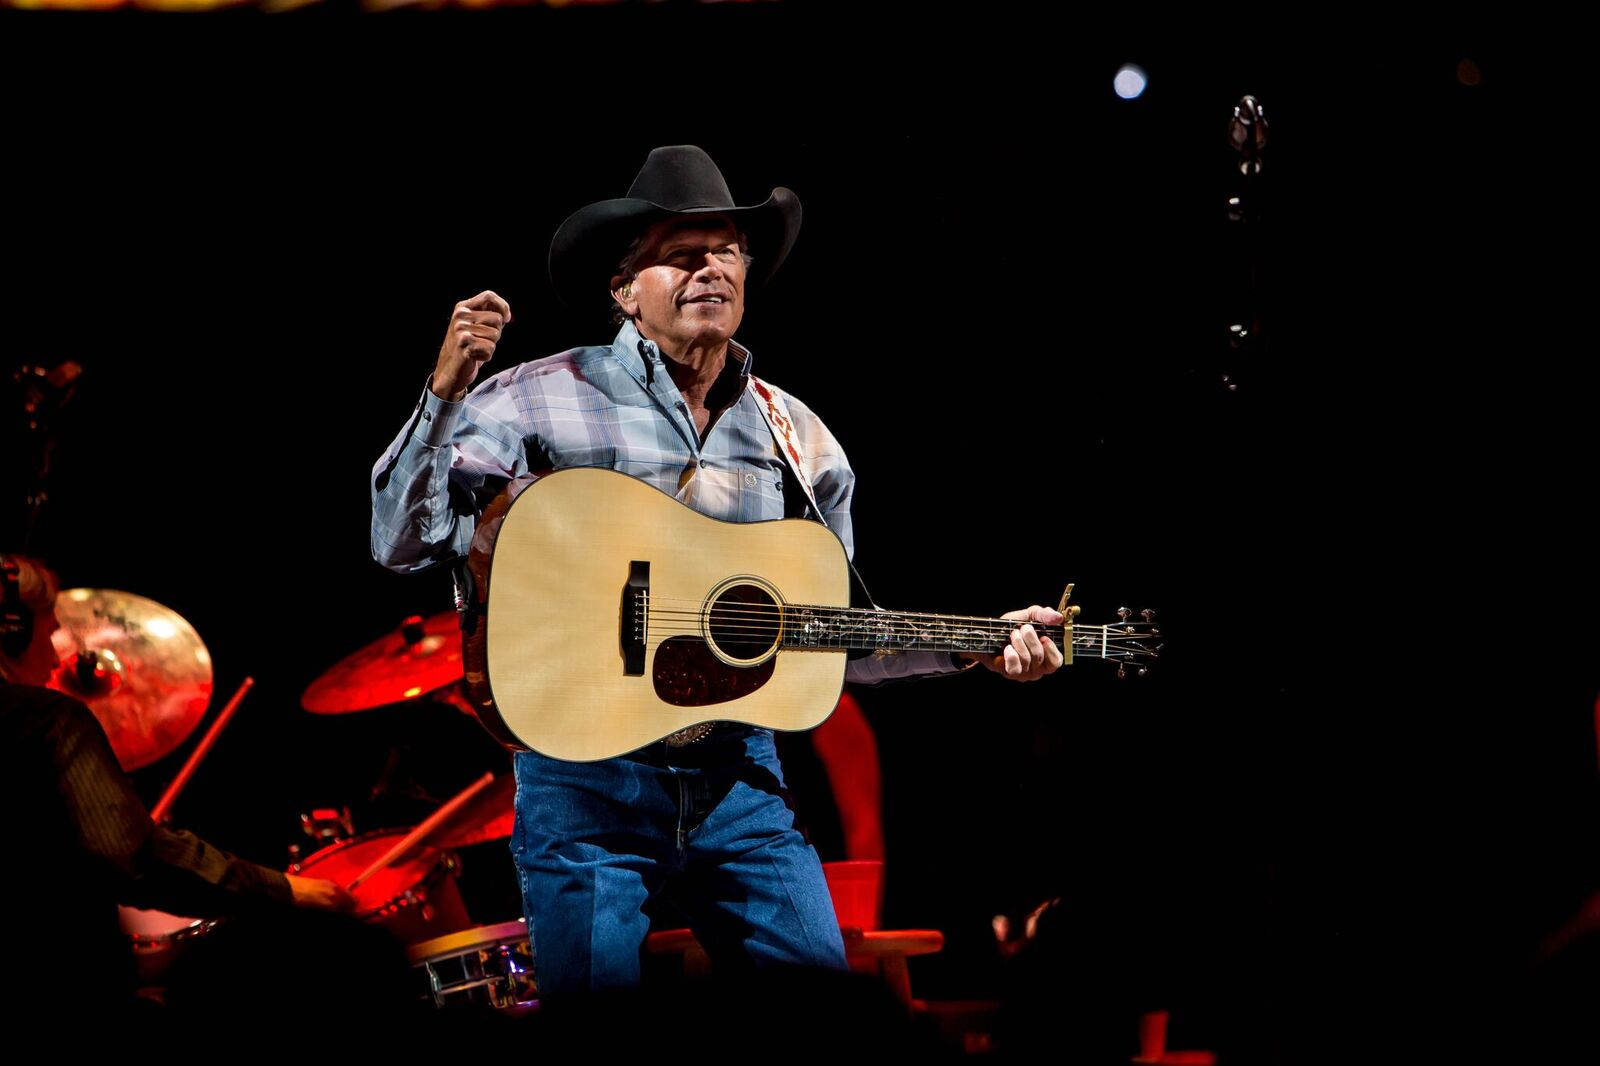 George Strait Supersized: The King returns to Las Vegas February 2-3, 2018